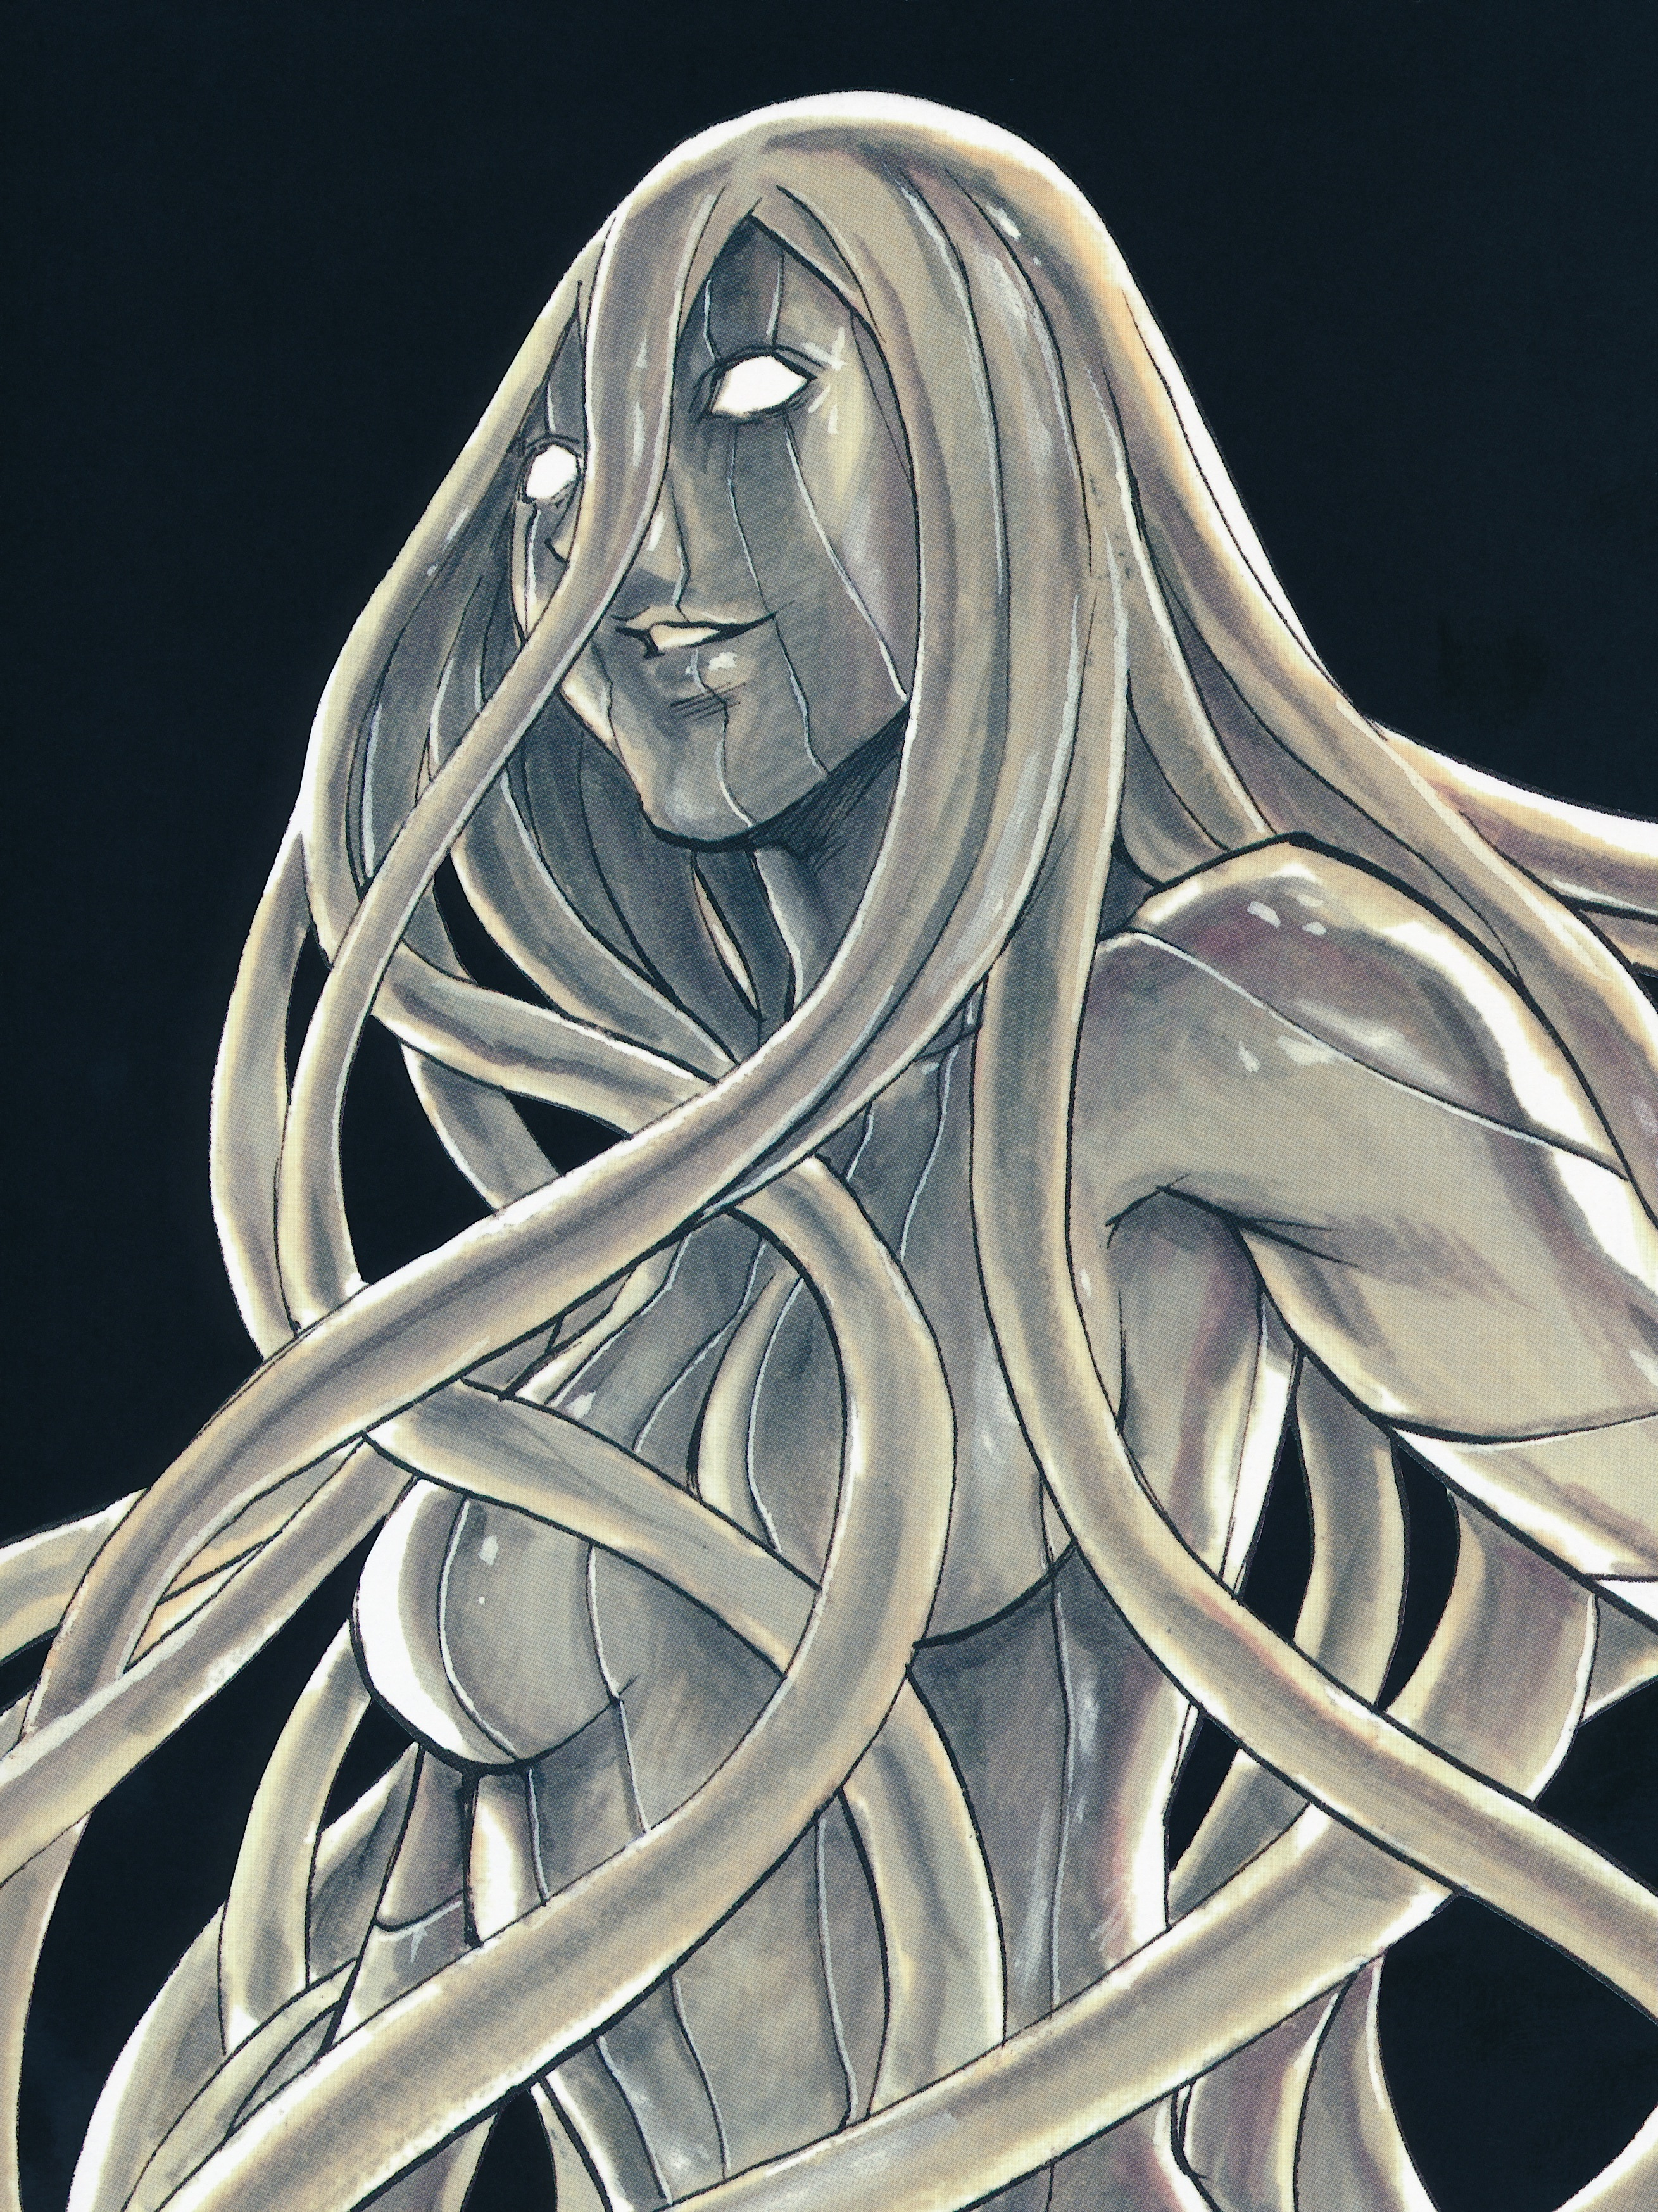 claymore riful by titaniaerza on DeviantArt